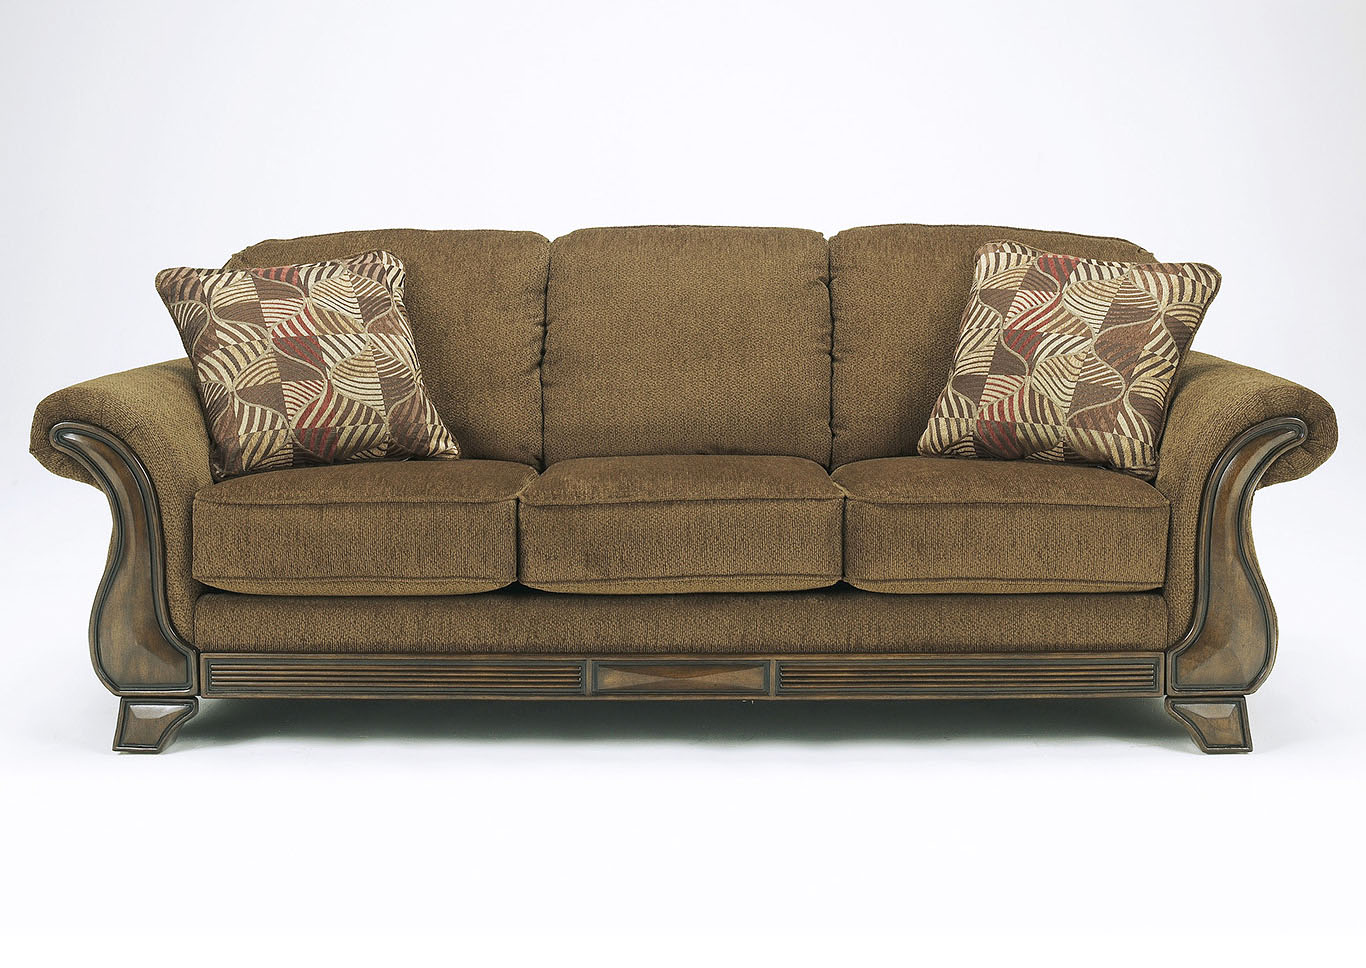 Montgomery Mocha Sofa,ABF Signature Design by Ashley